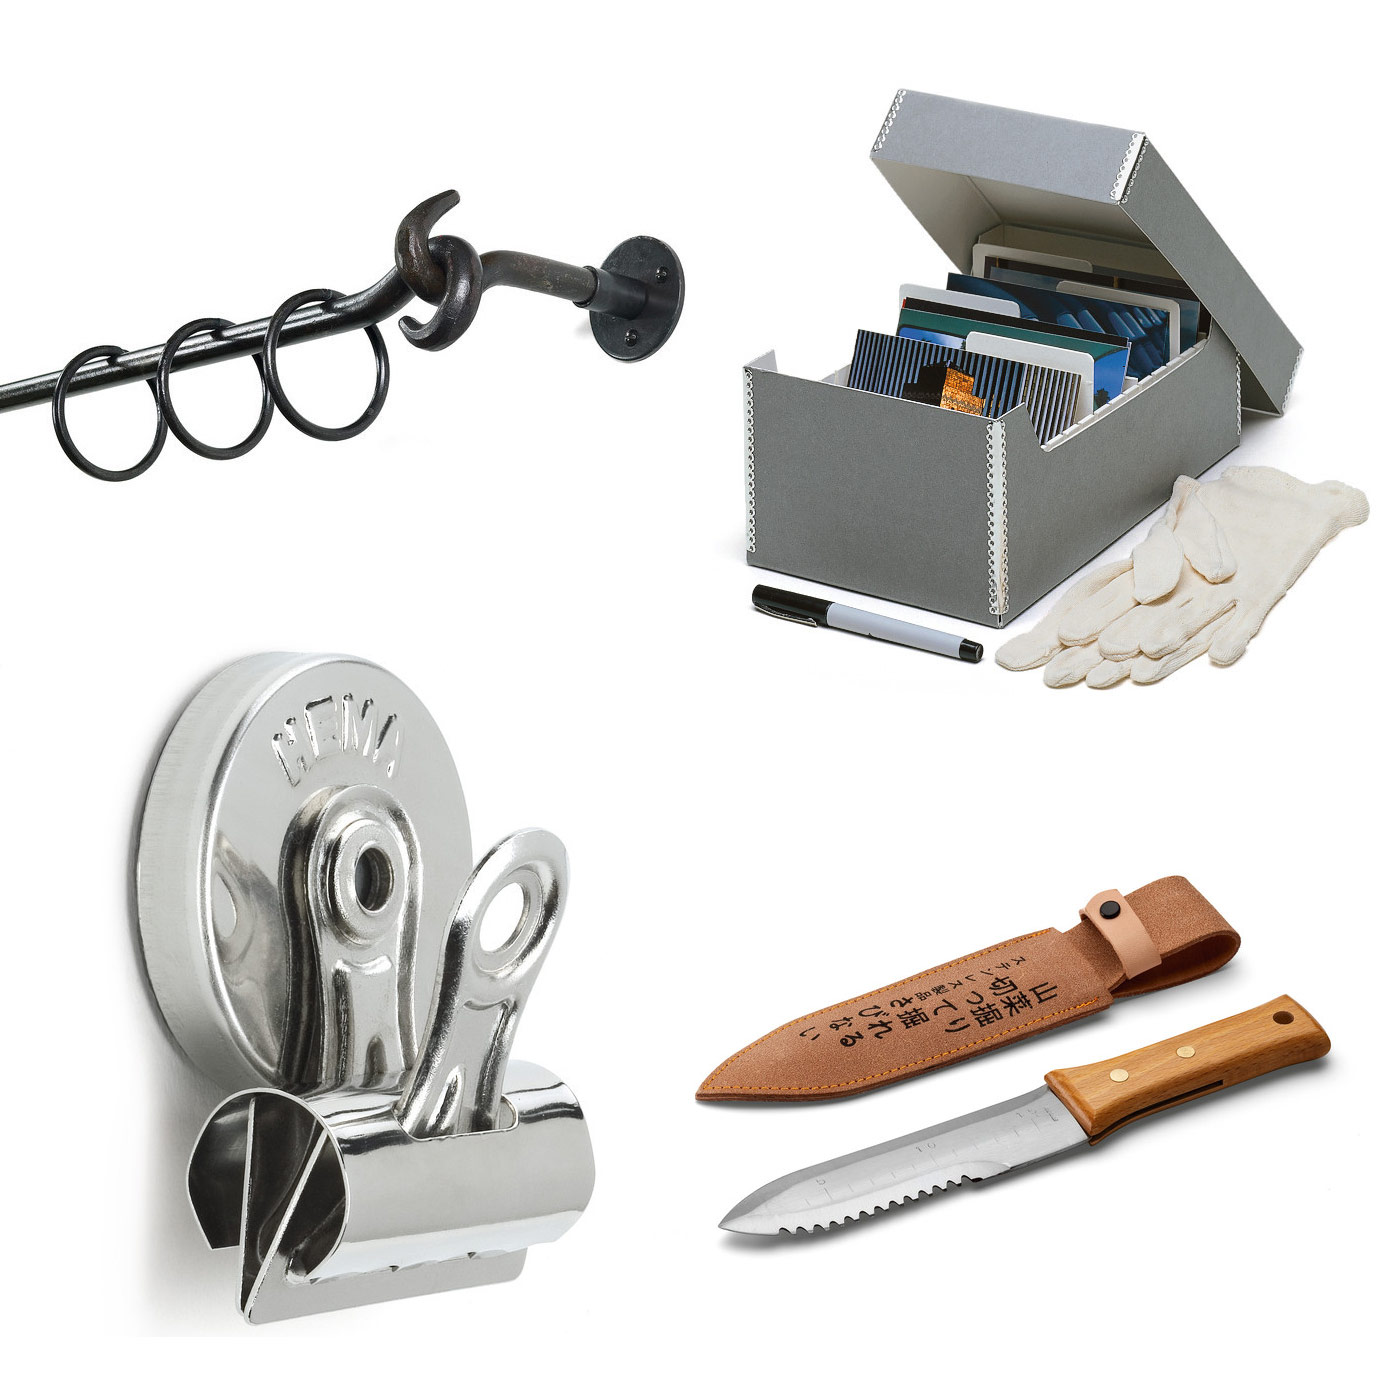 Clockwise from top left: Forged steel curtain set, Archive box set, Japanese plant knife, Magnetic paper clamps